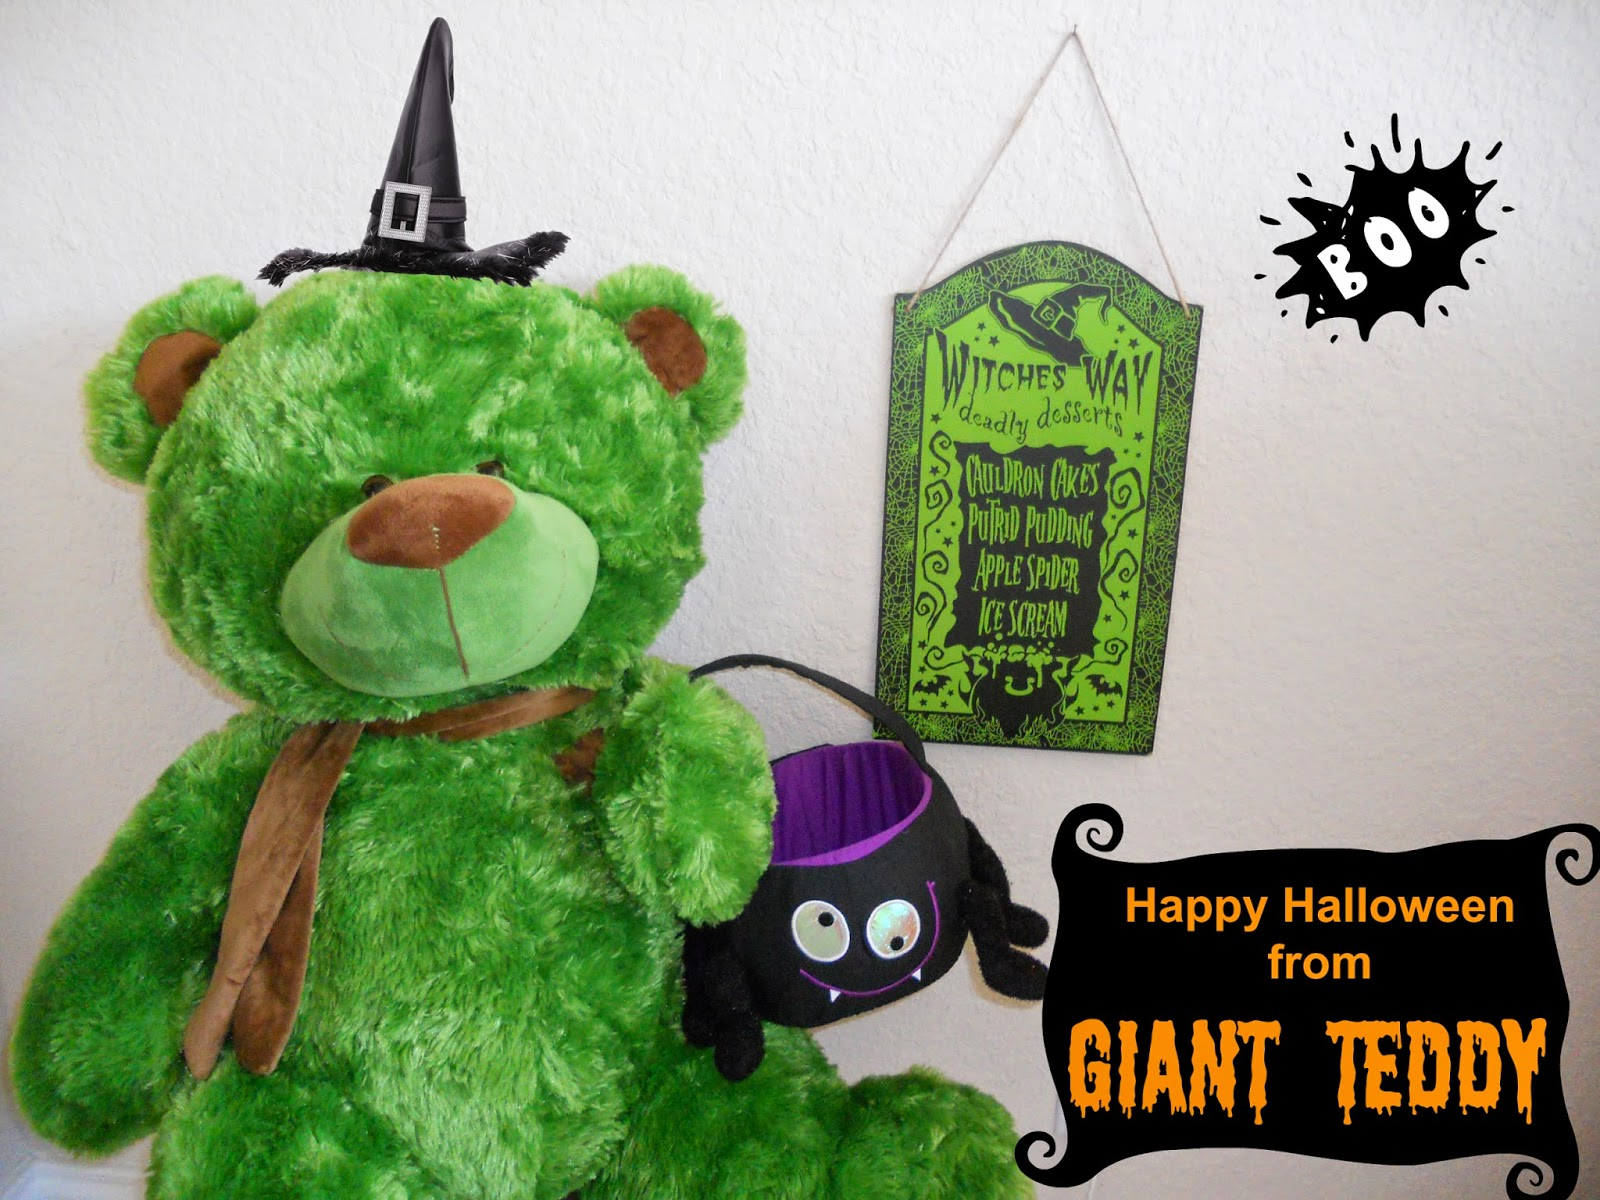 Everyone is thankful for life-size green teddy bears